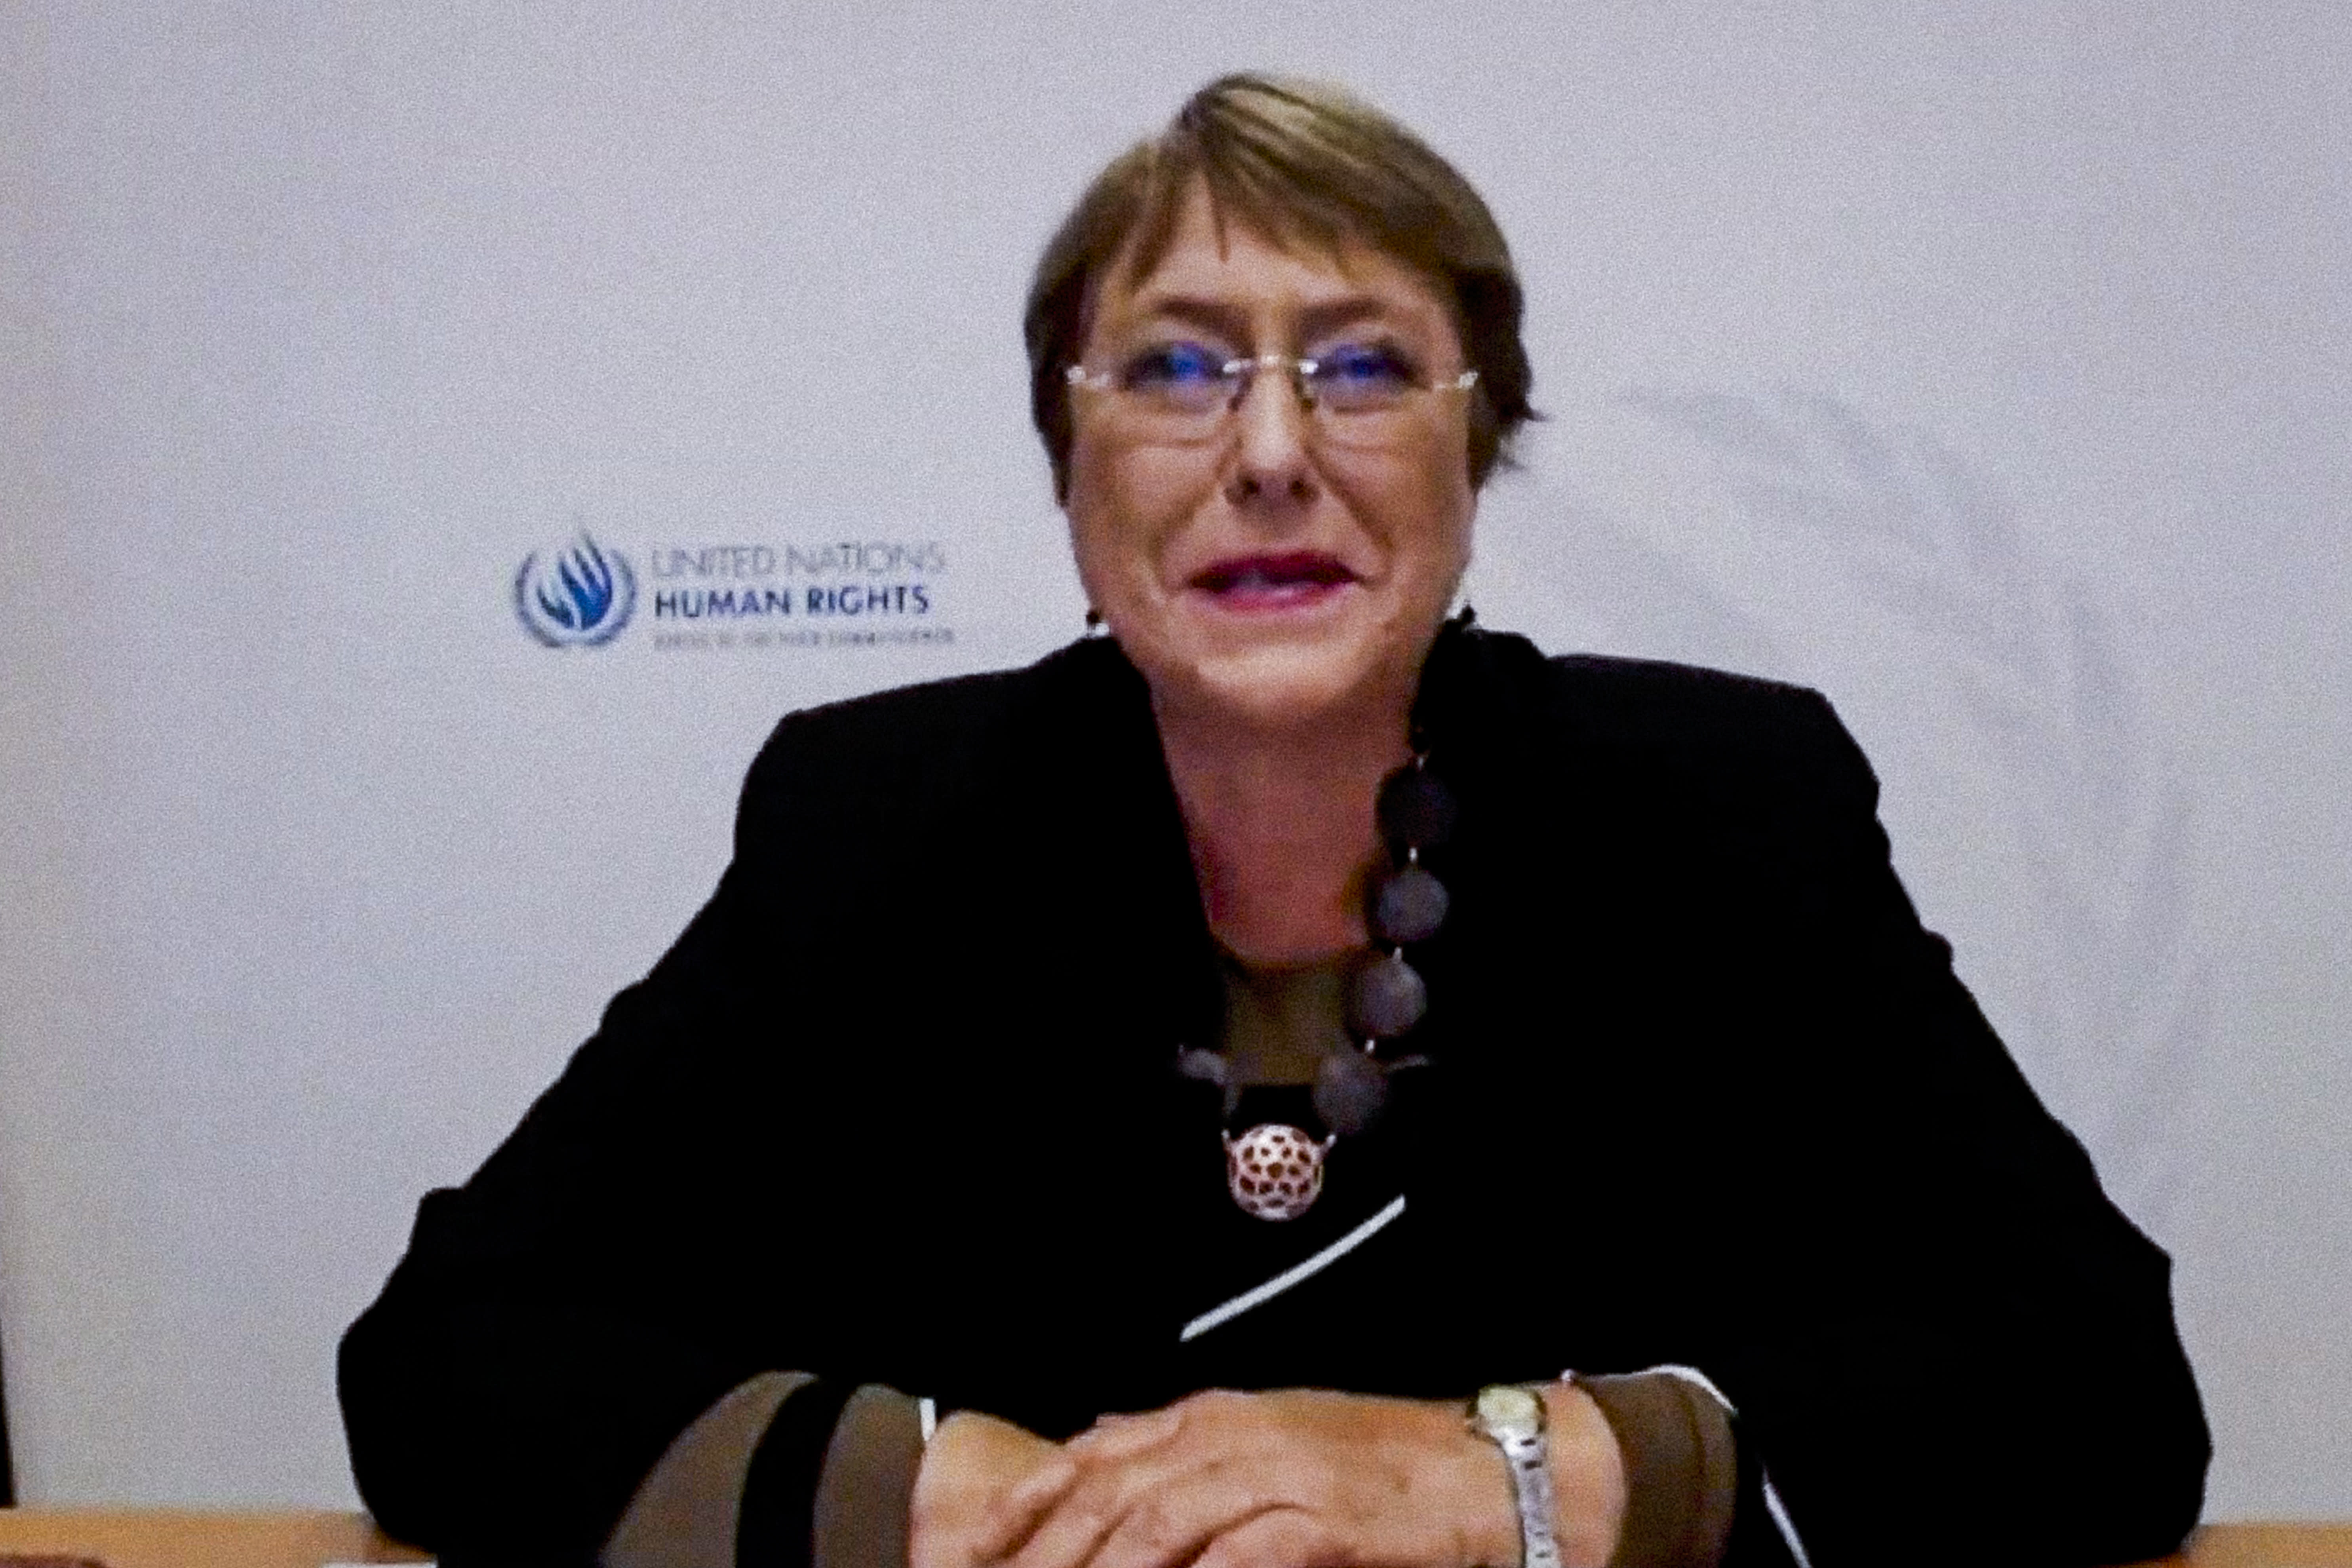 """In this photo provided by the United Nations, Michelle Bachelet, U.N. High Commissioner for Human Rights, addresses the high-level virtual panel entitled """"Participation, Human Rights and the Governance Challenge Ahead,"""" Friday, Sept. 25, 2020, in New York. (Manuel Elias/United Nations via AP)"""